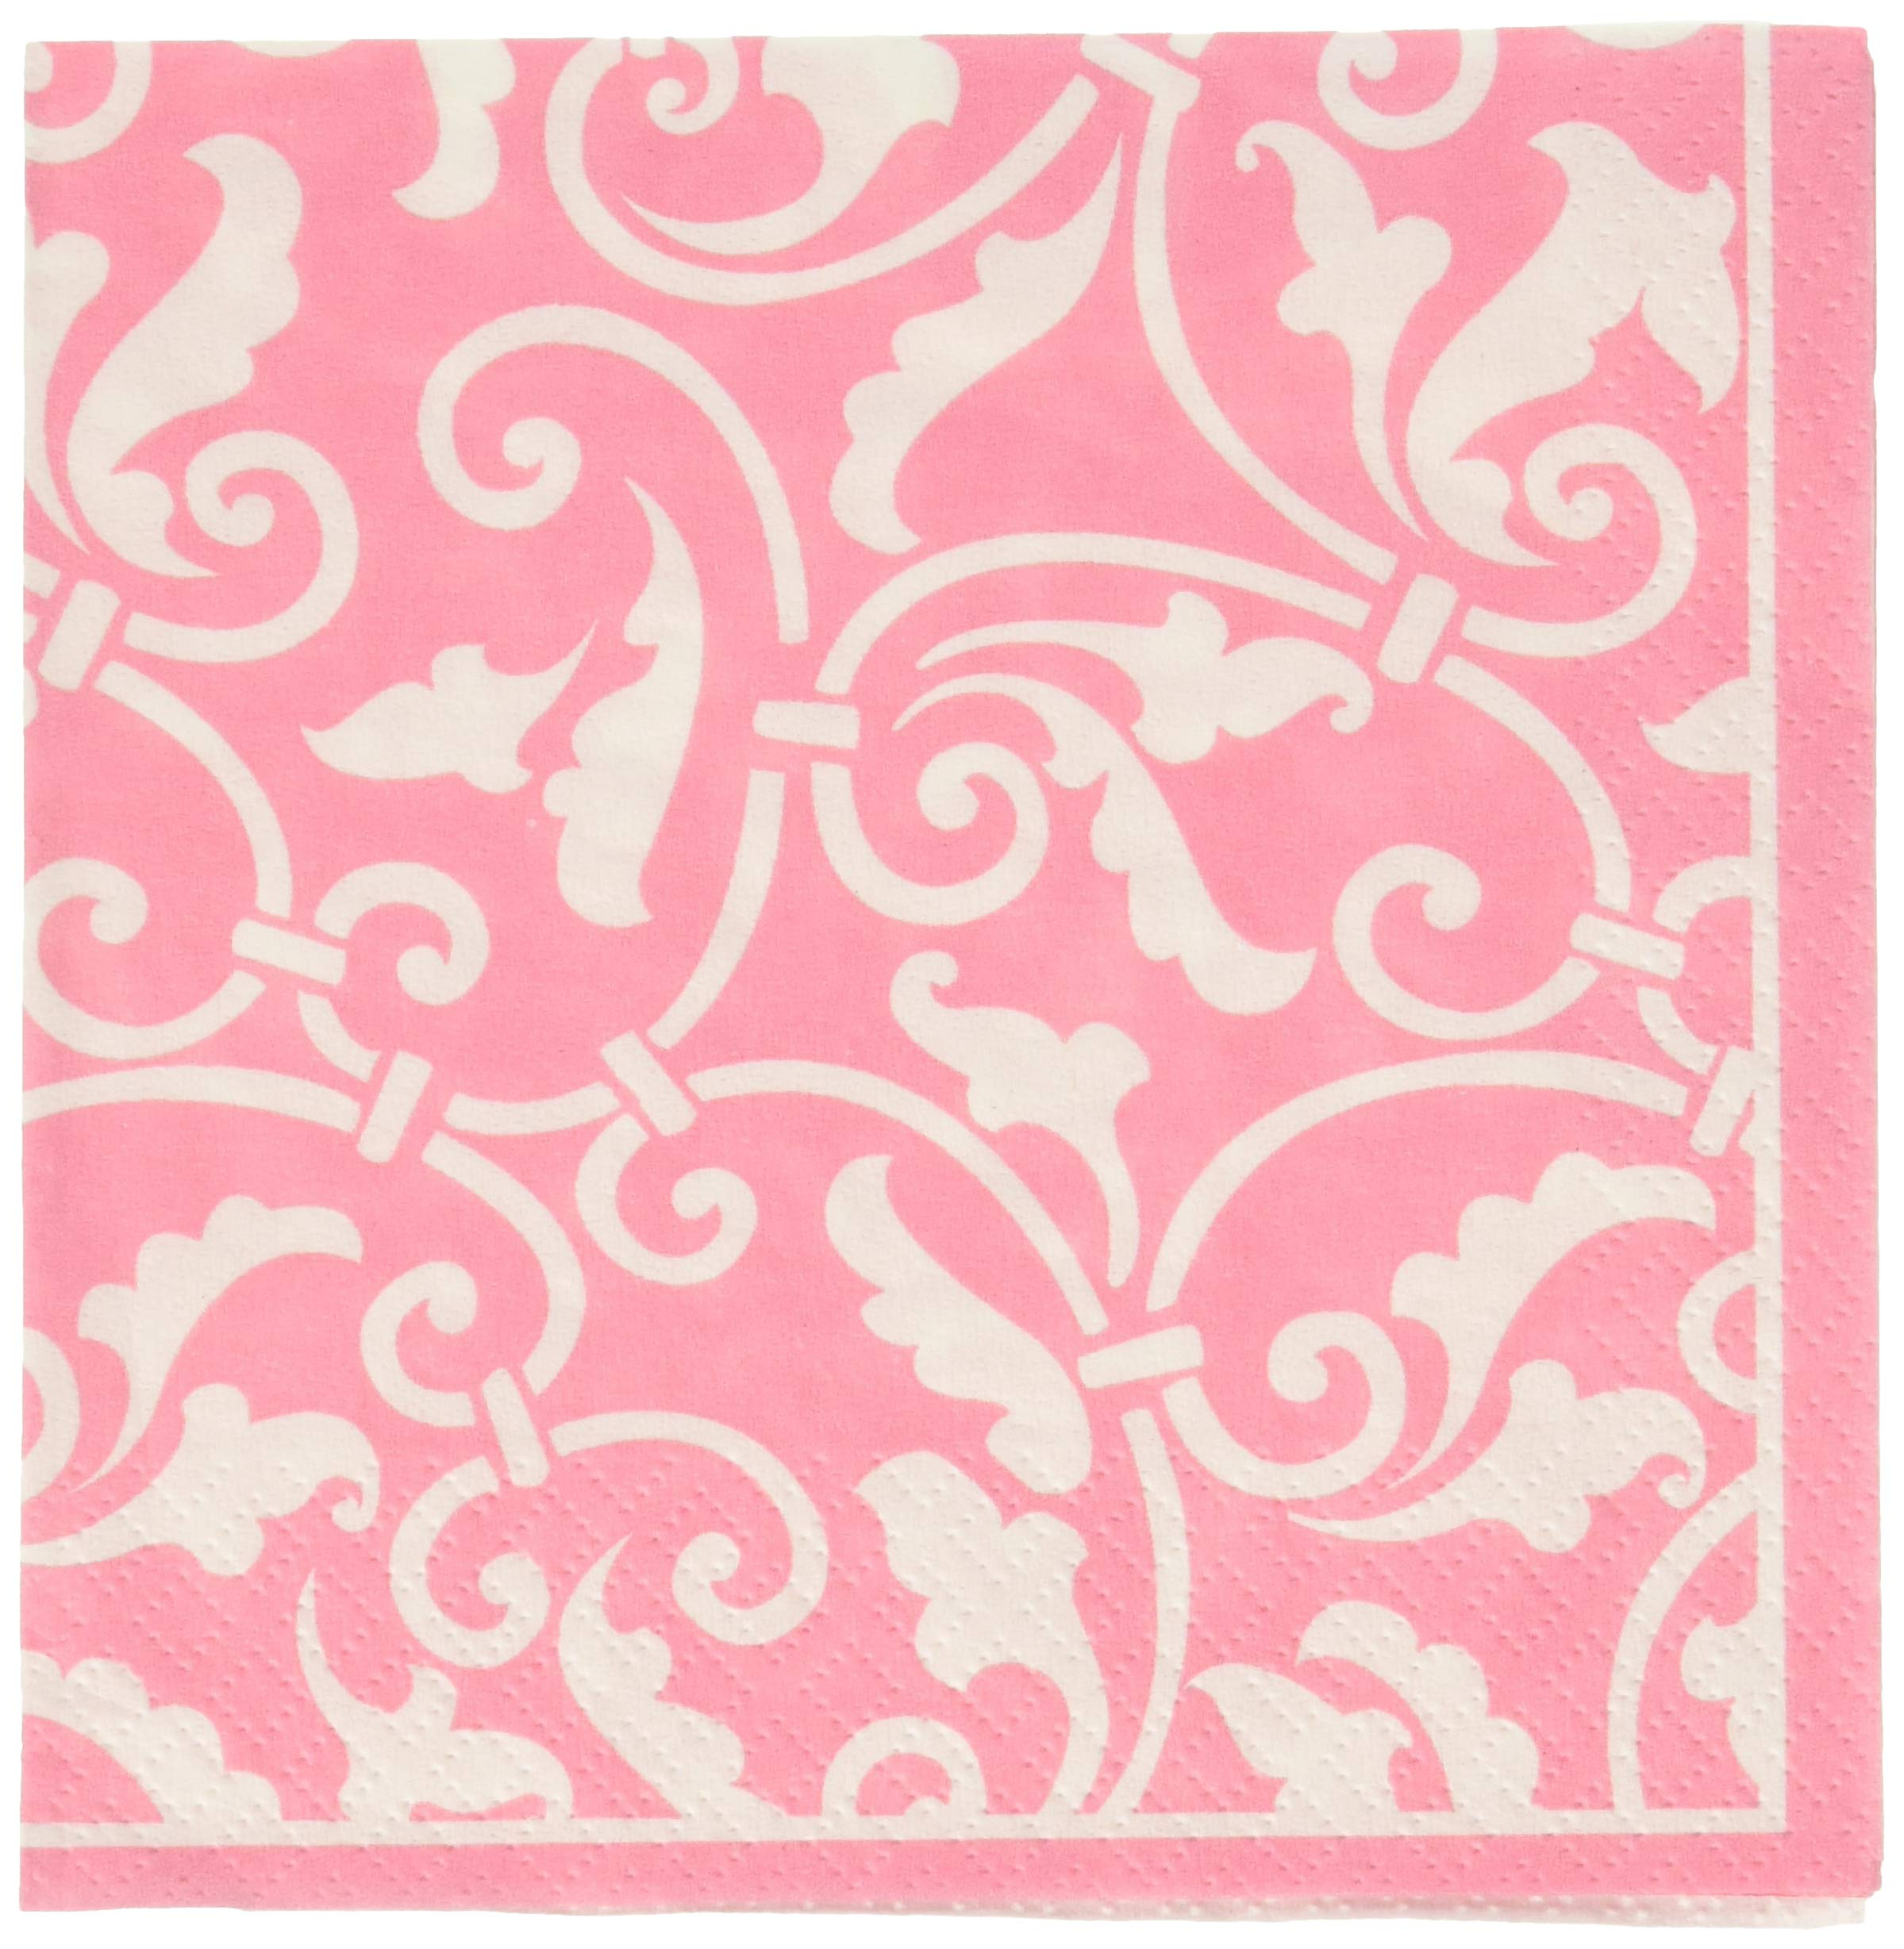 Amscan Ready Ornamental Scroll Beverage Childrens Party Napkins (Pack 16), Pink, 5'' x 5'' by Amscan